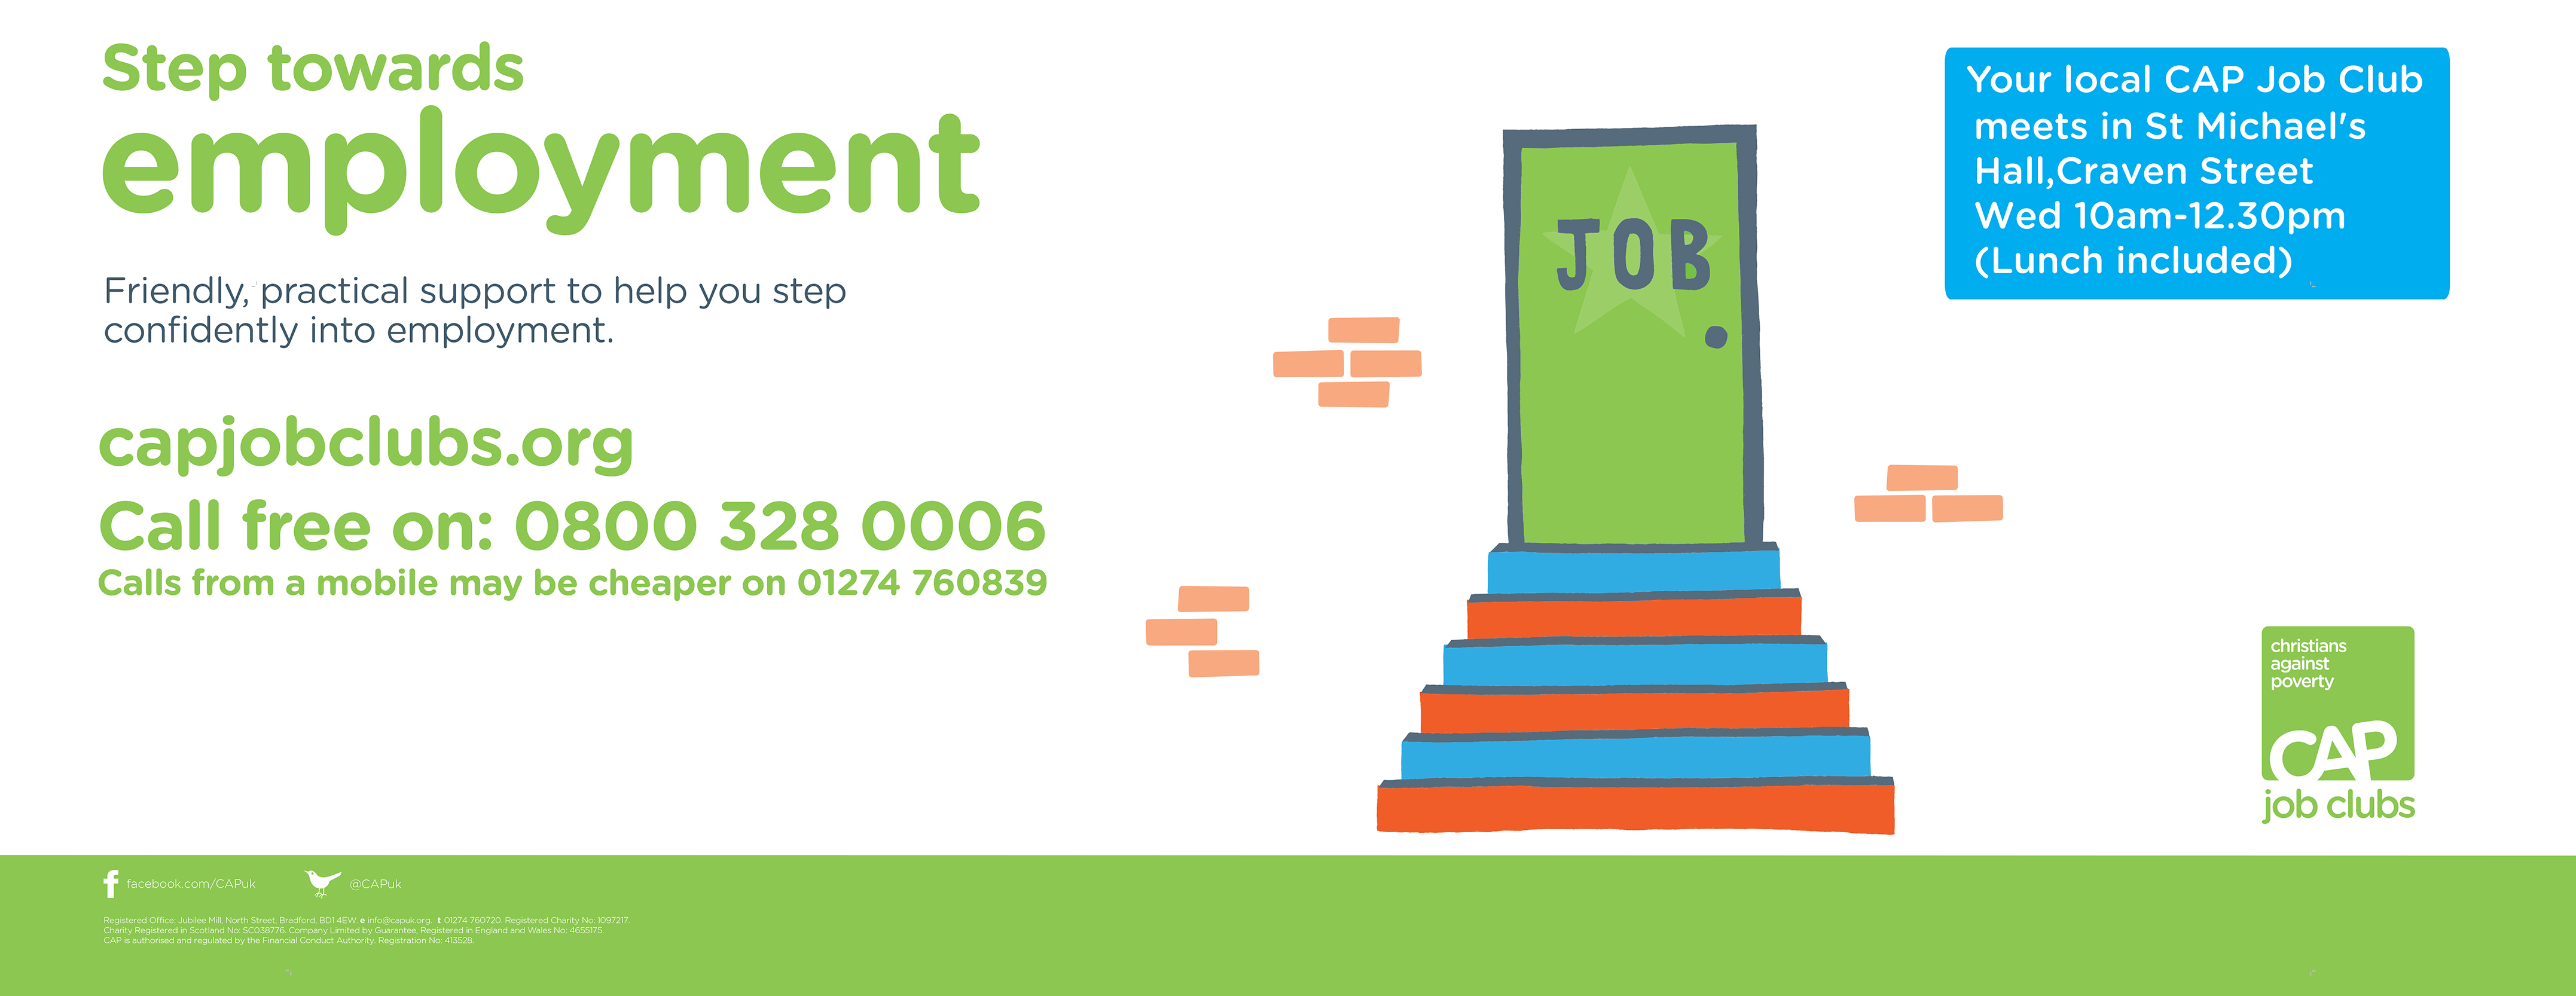 need help finding a job, drop in to our job club | st michaels church